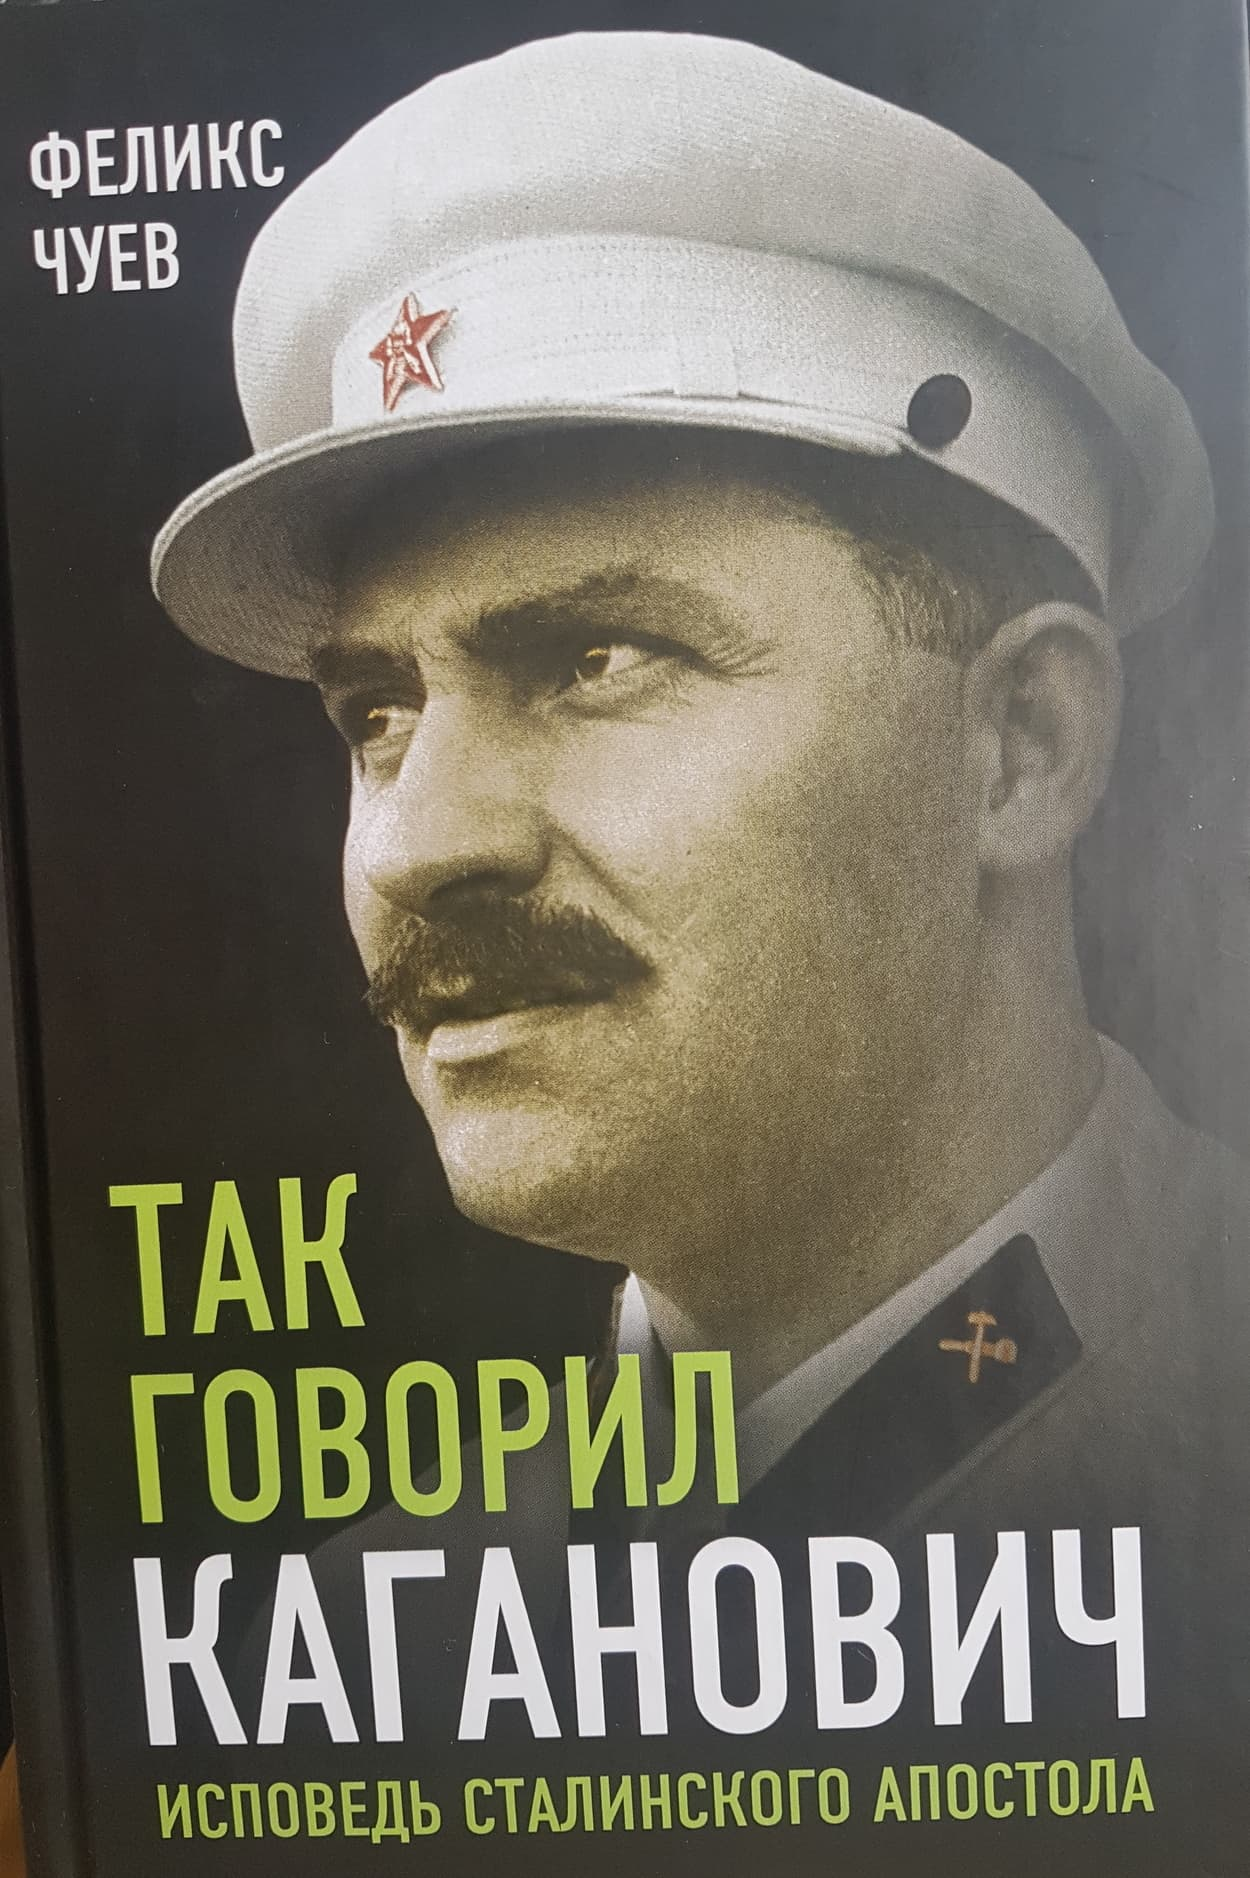 Book in Russian about Lazar Kaganovich, one of the main associates of Joseph Stalin